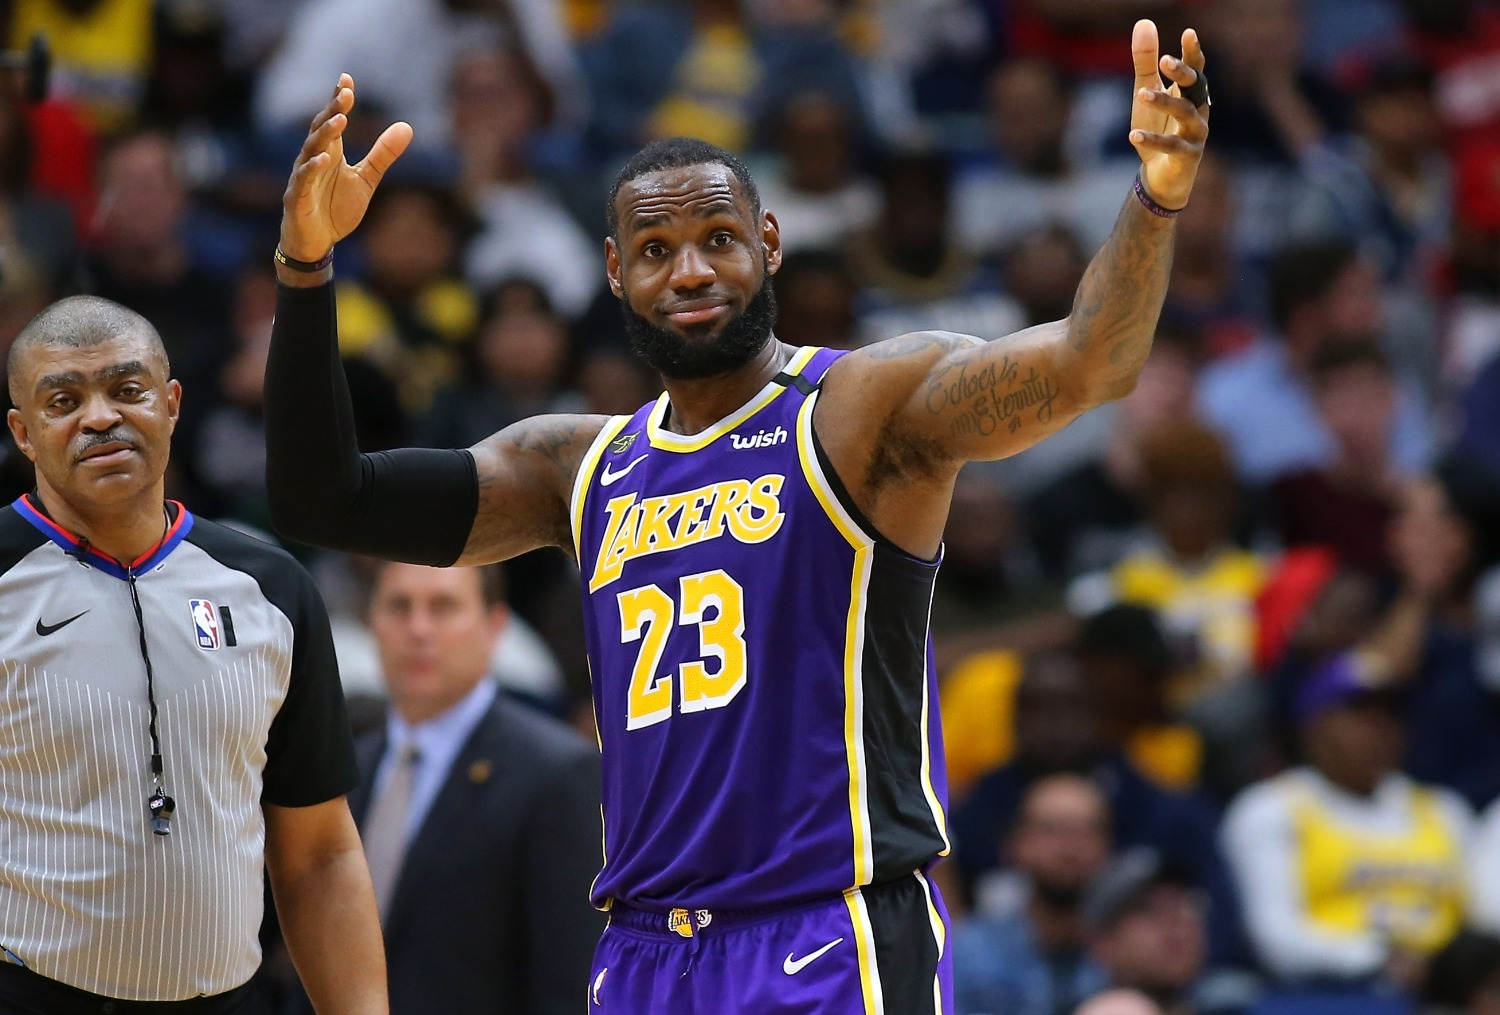 LeBron James just set a $1.8 million record by doing absolutely nothing.